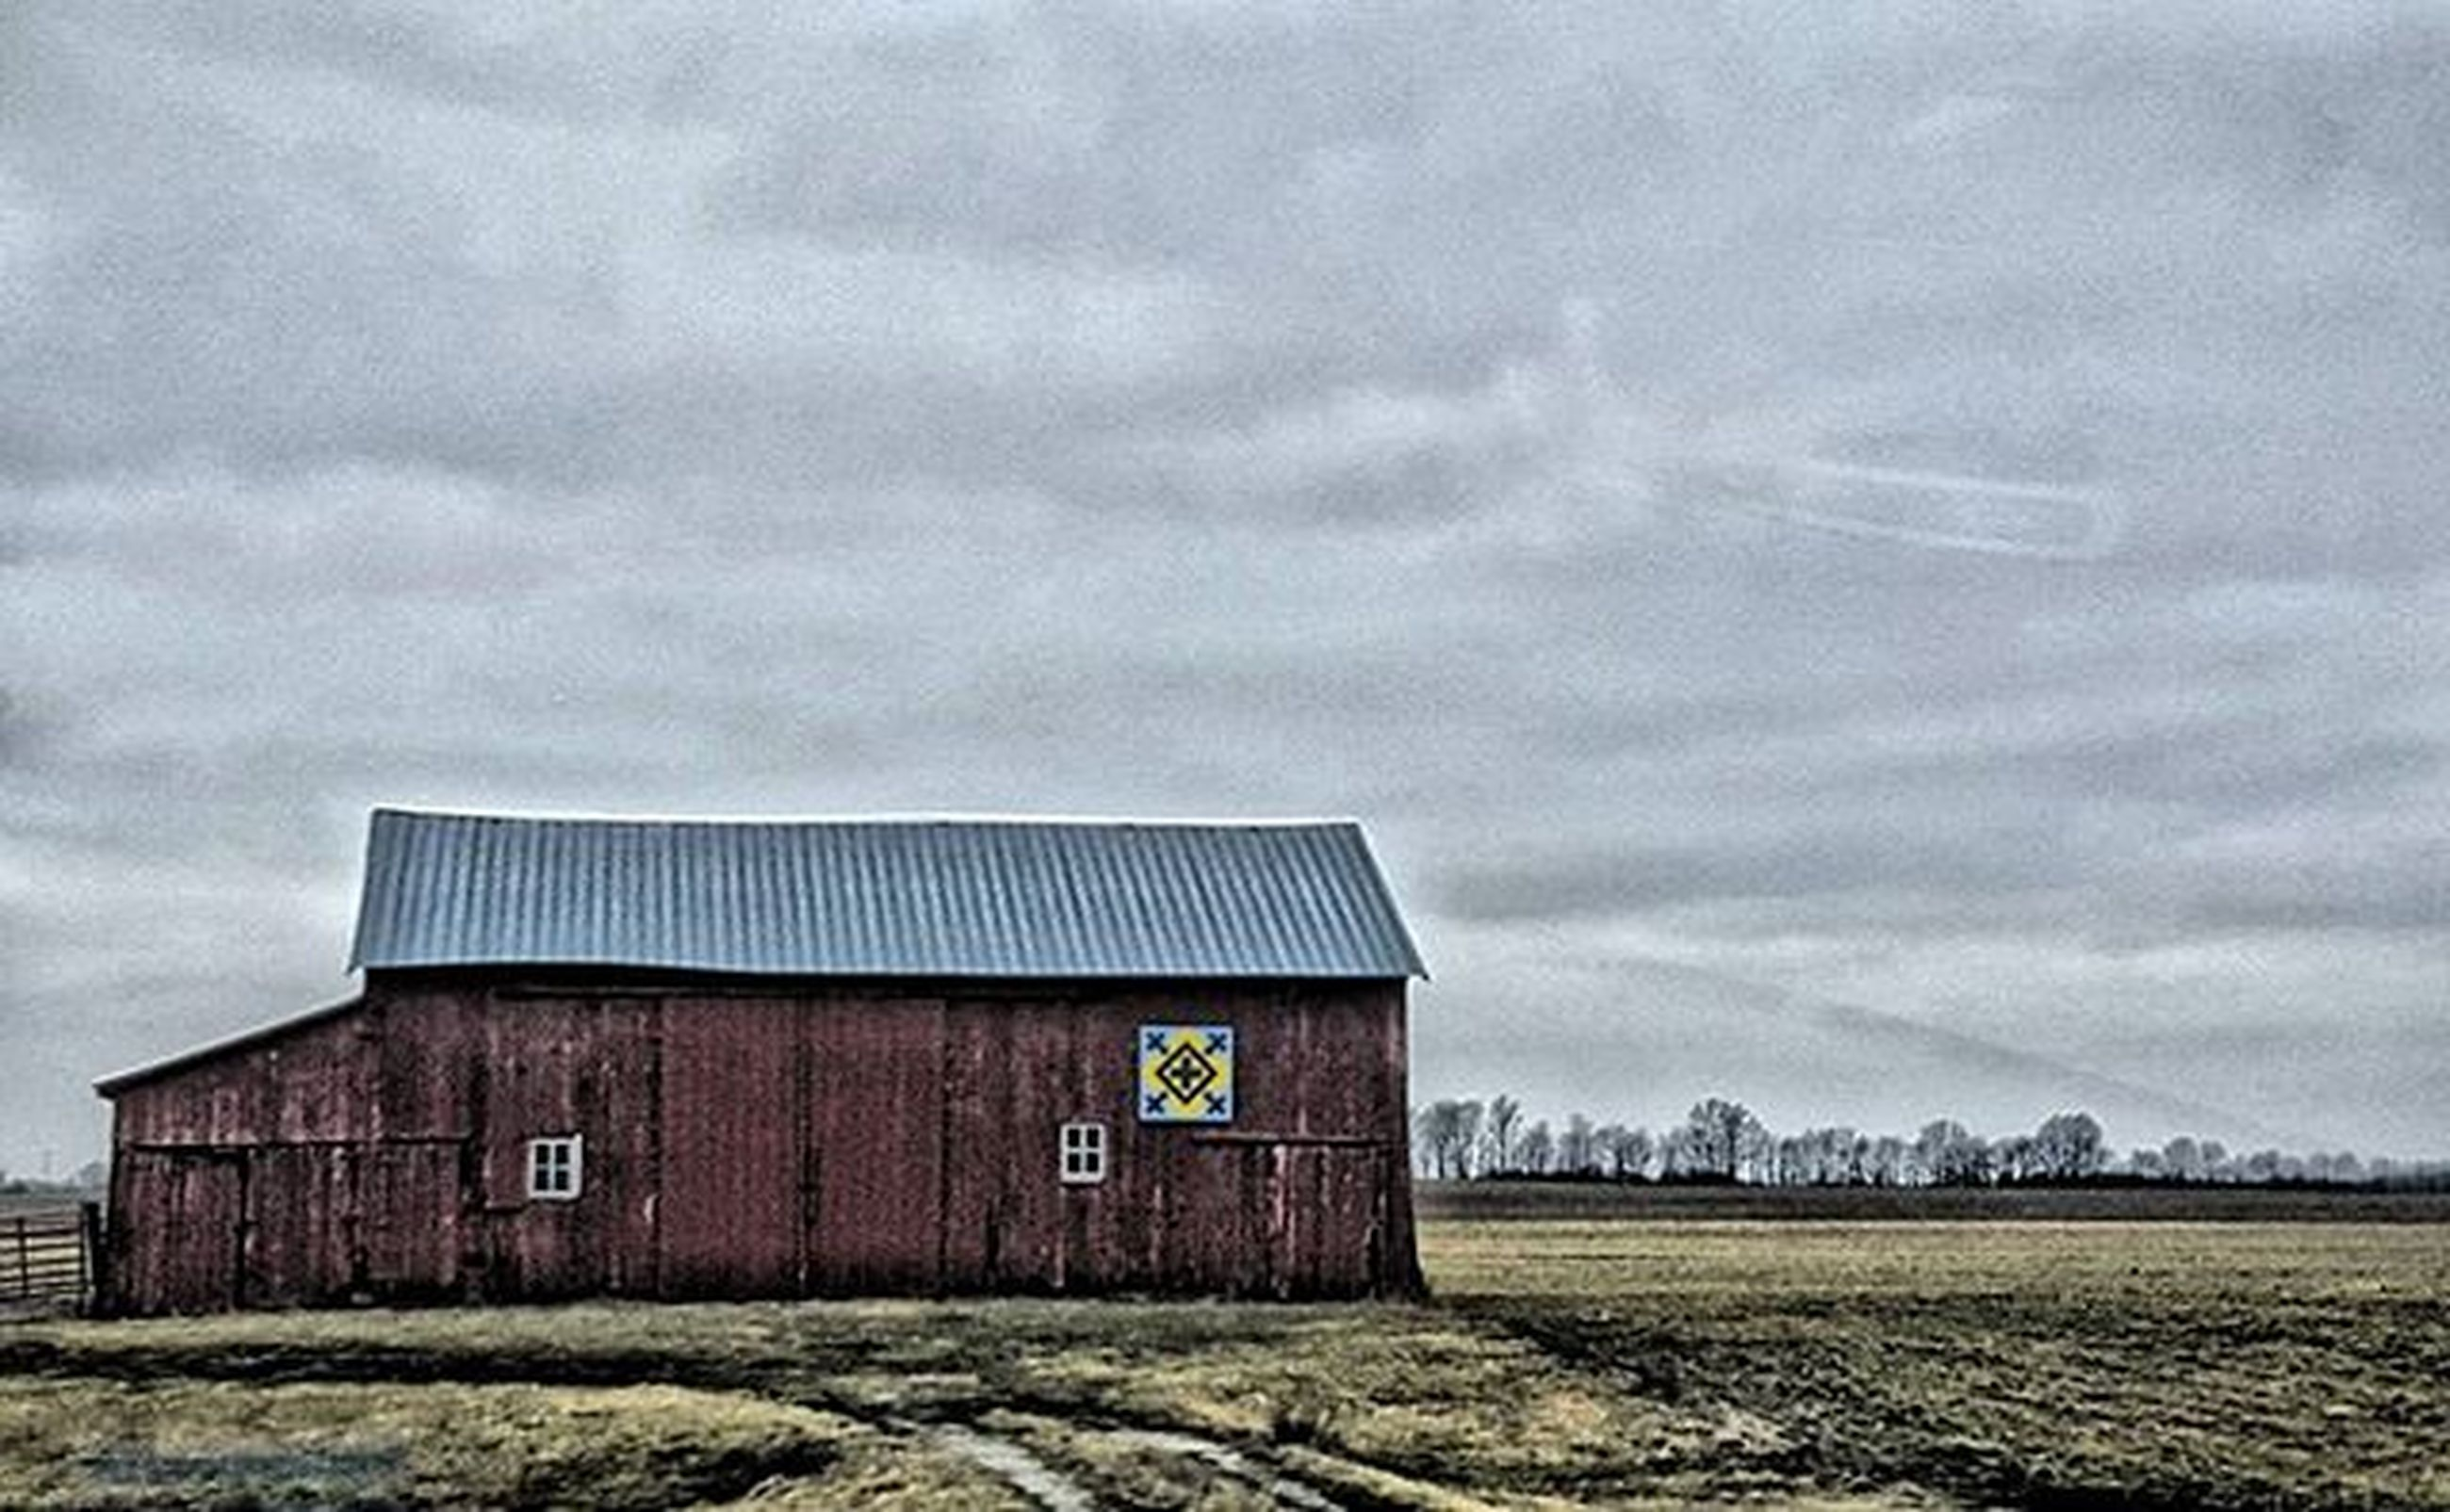 building exterior, architecture, built structure, sky, cloud - sky, field, house, cloudy, rural scene, landscape, weather, cloud, barn, overcast, outdoors, day, no people, agriculture, residential structure, nature